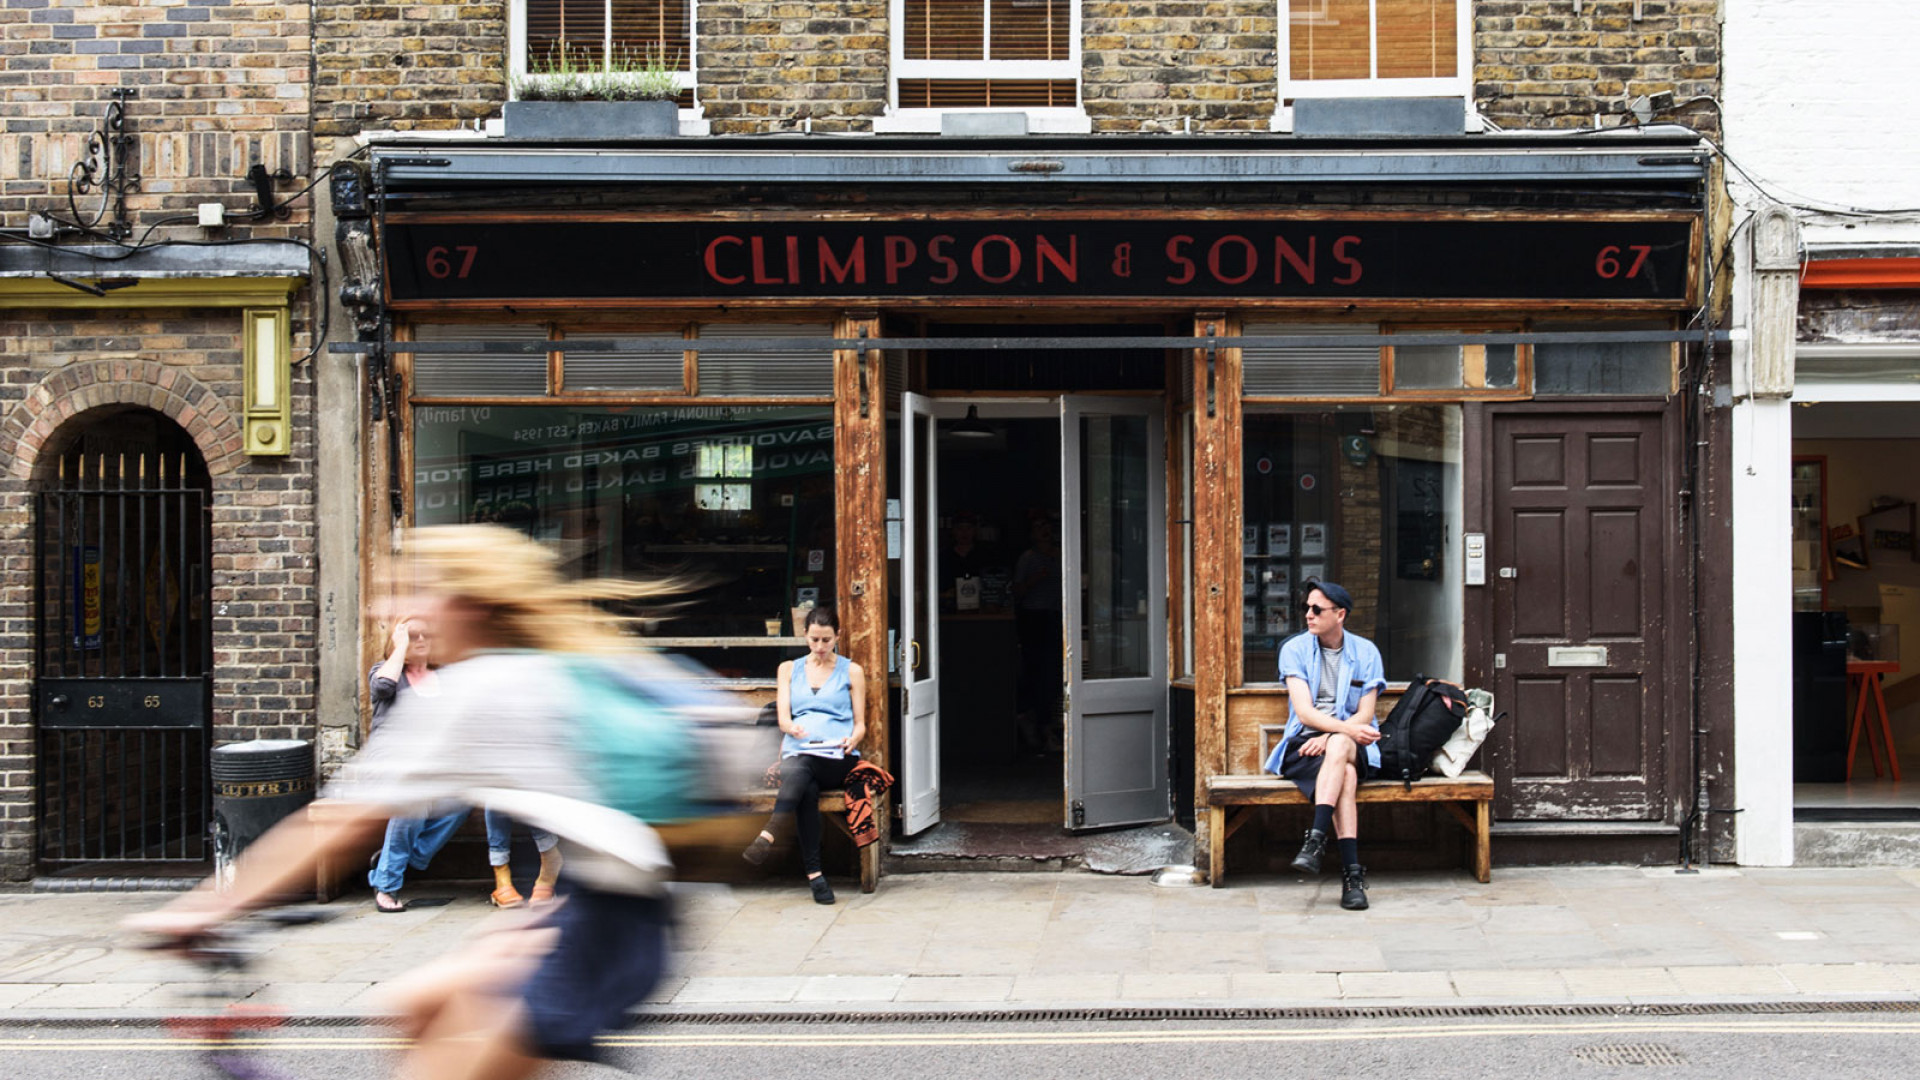 Climpson & Sons' Broadway Market café